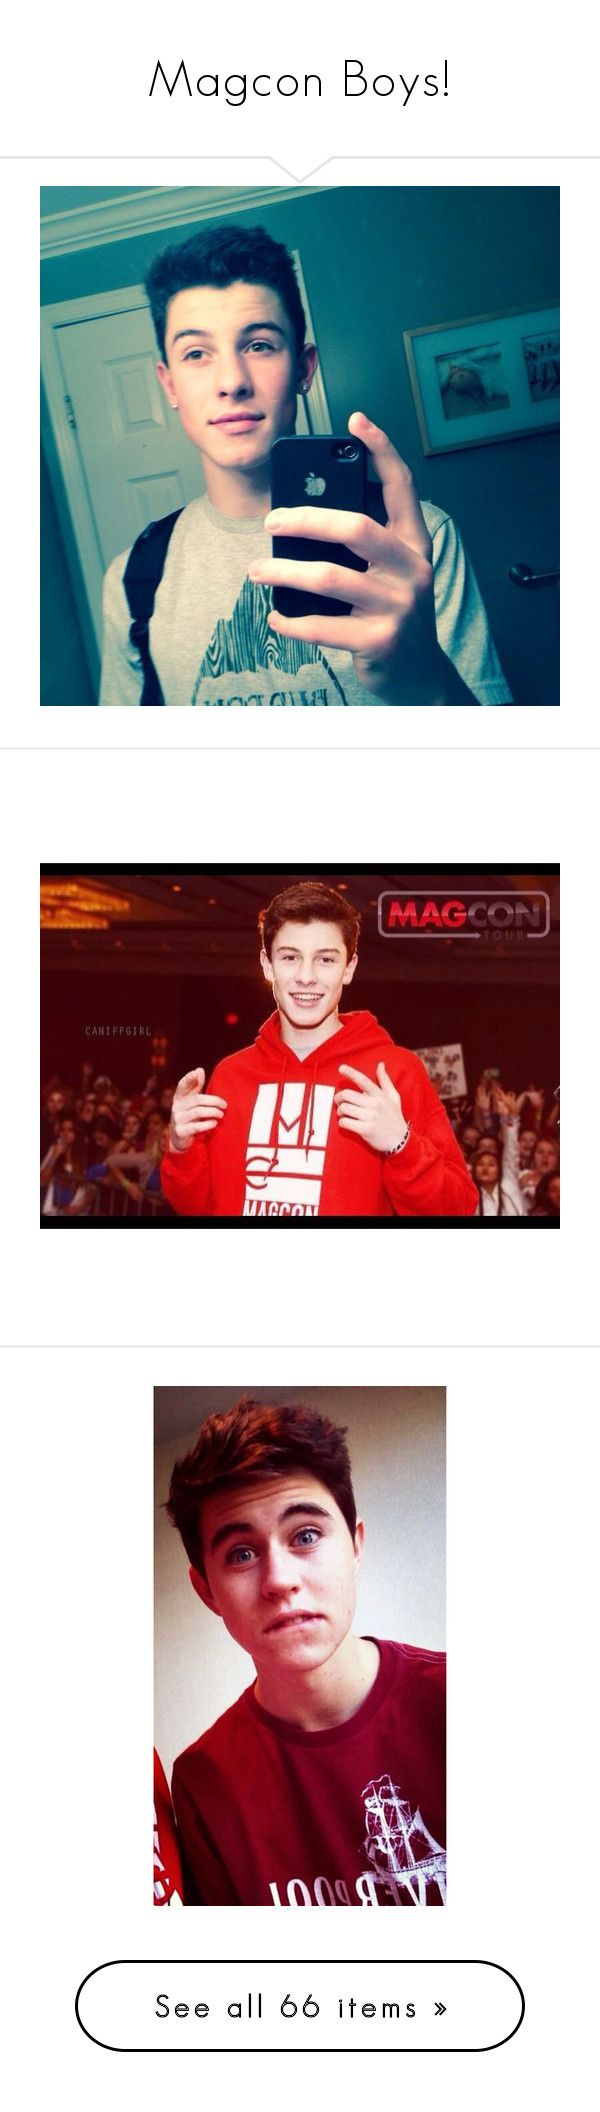 """""""Magcon Boys!"""" by rockysdimplesr5 ❤ liked on Polyvore featuring magcon, shawn, shawn mendes, pictures, magcon boys, people, boys, nash grier, carter and taylor"""